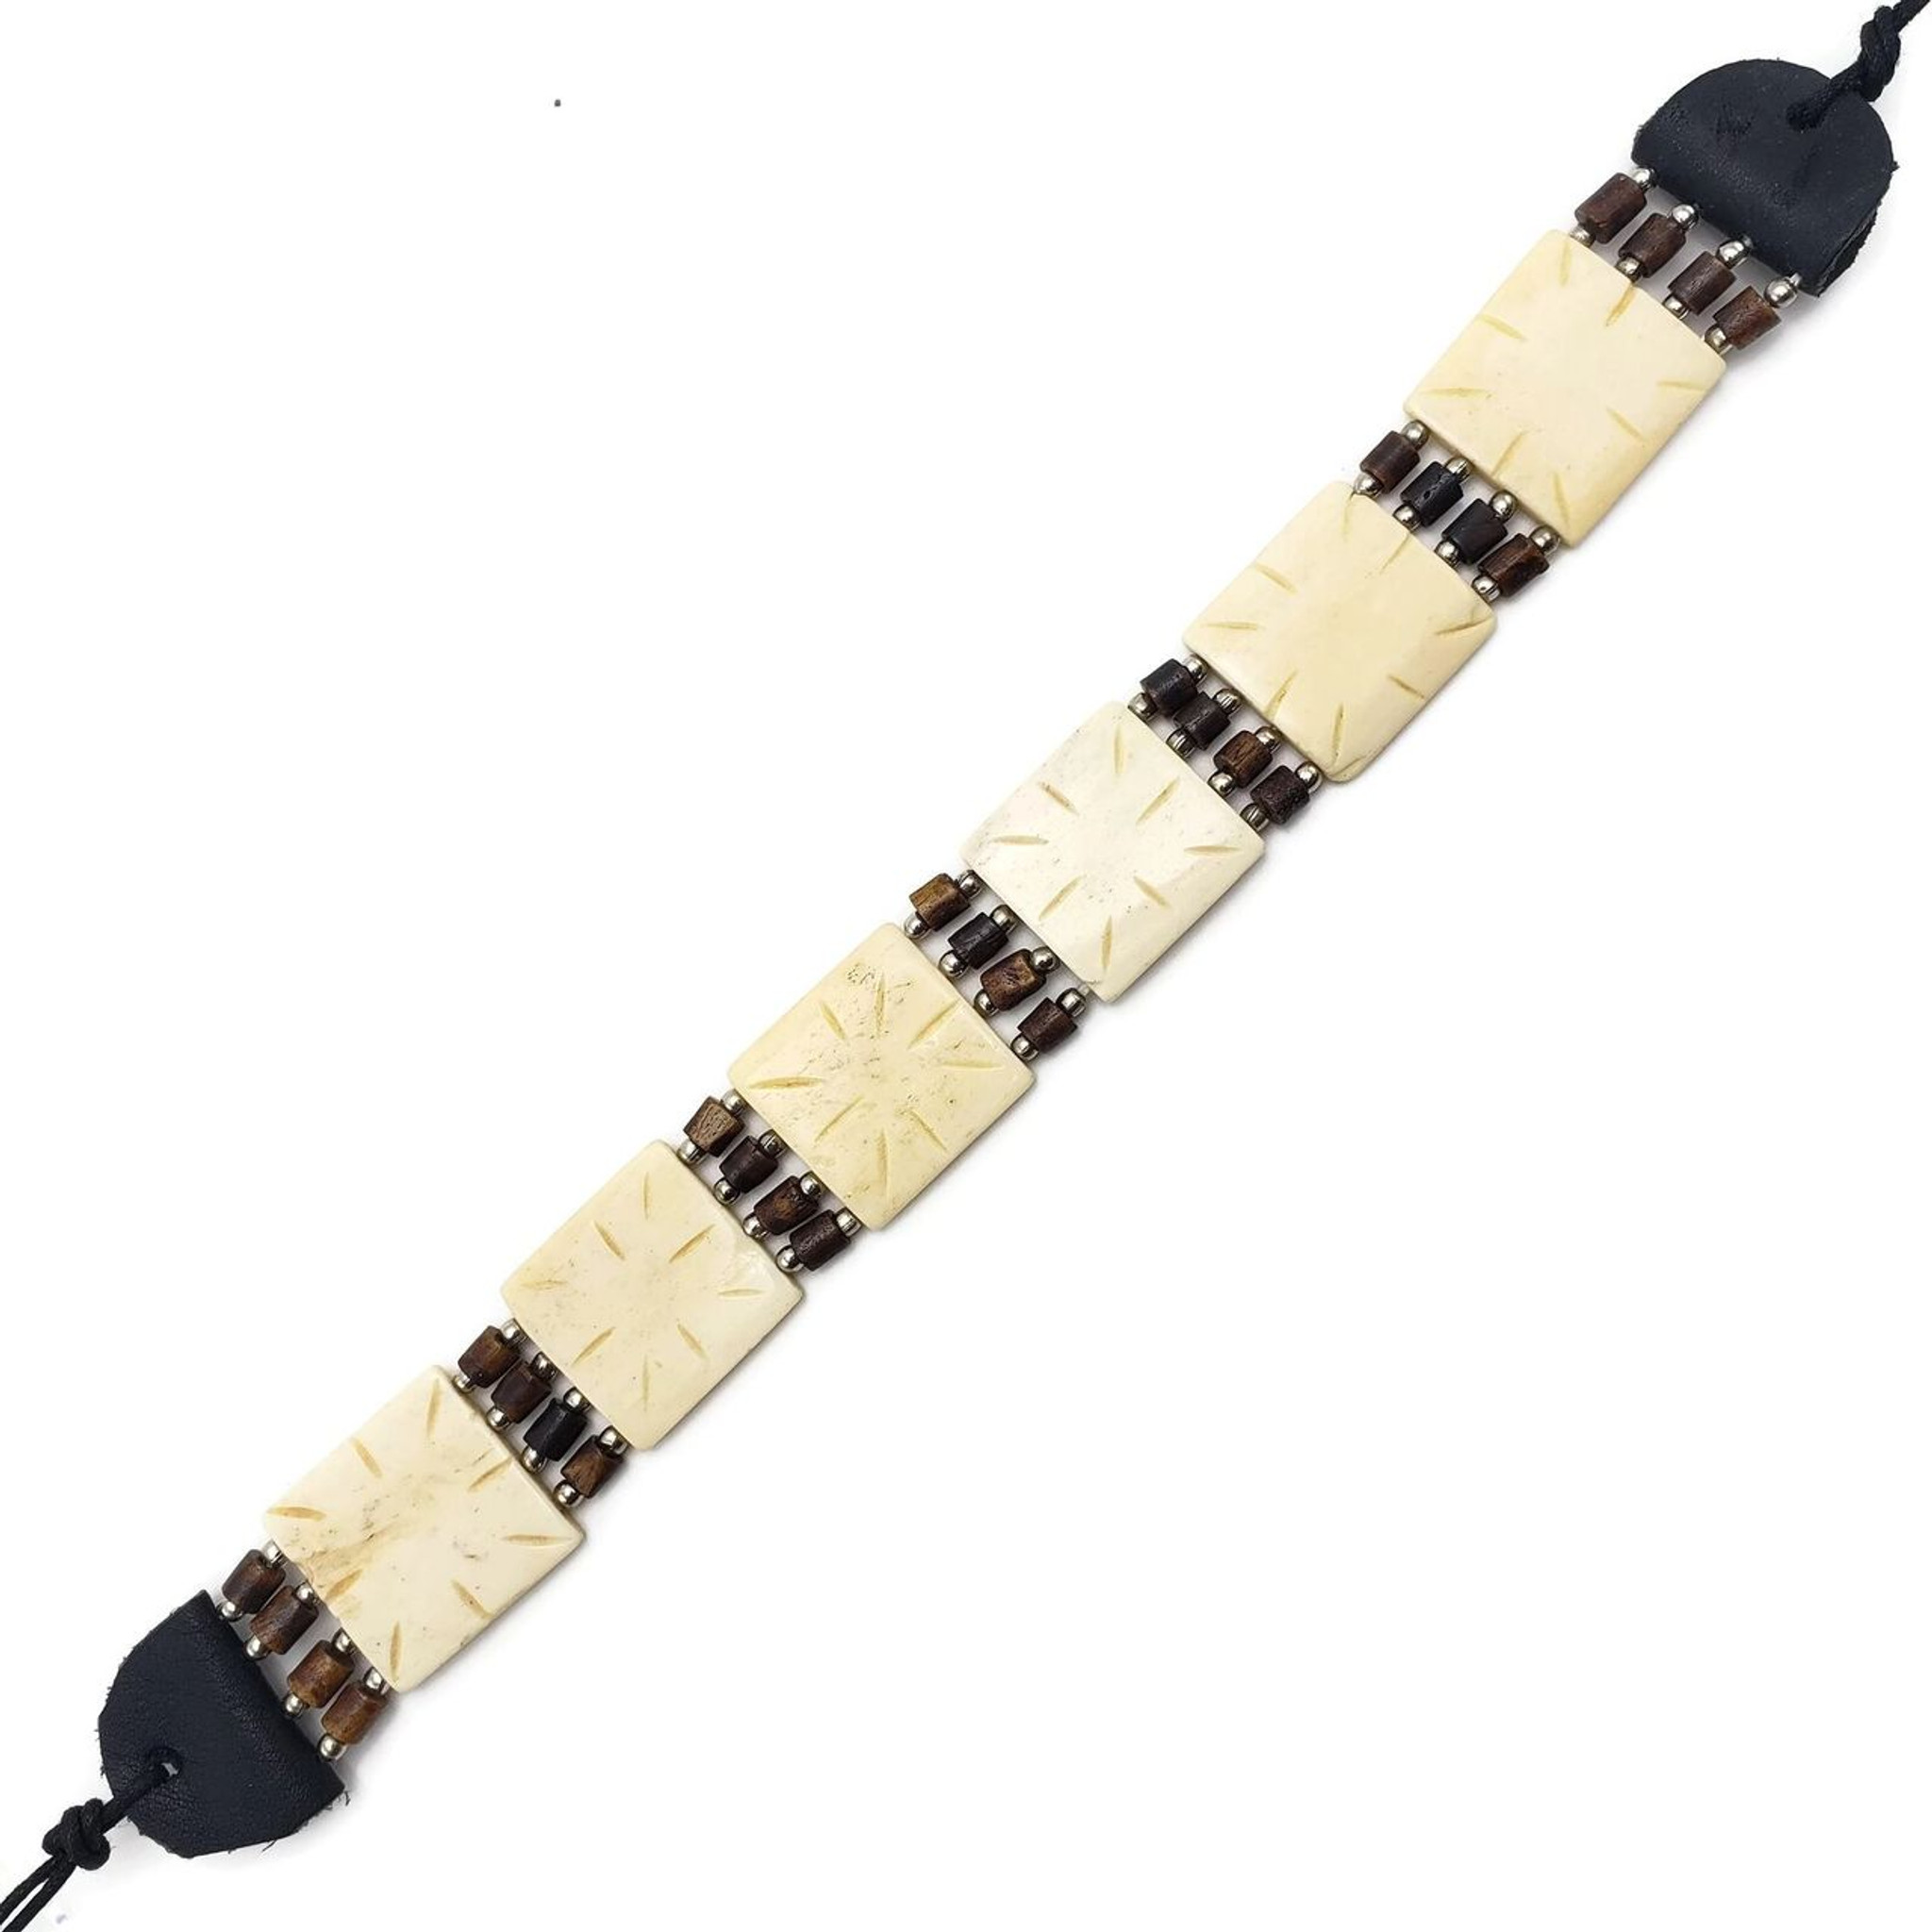 Buffalo Bone Choker Leather Binding Native American Jewelry Beads CK4453